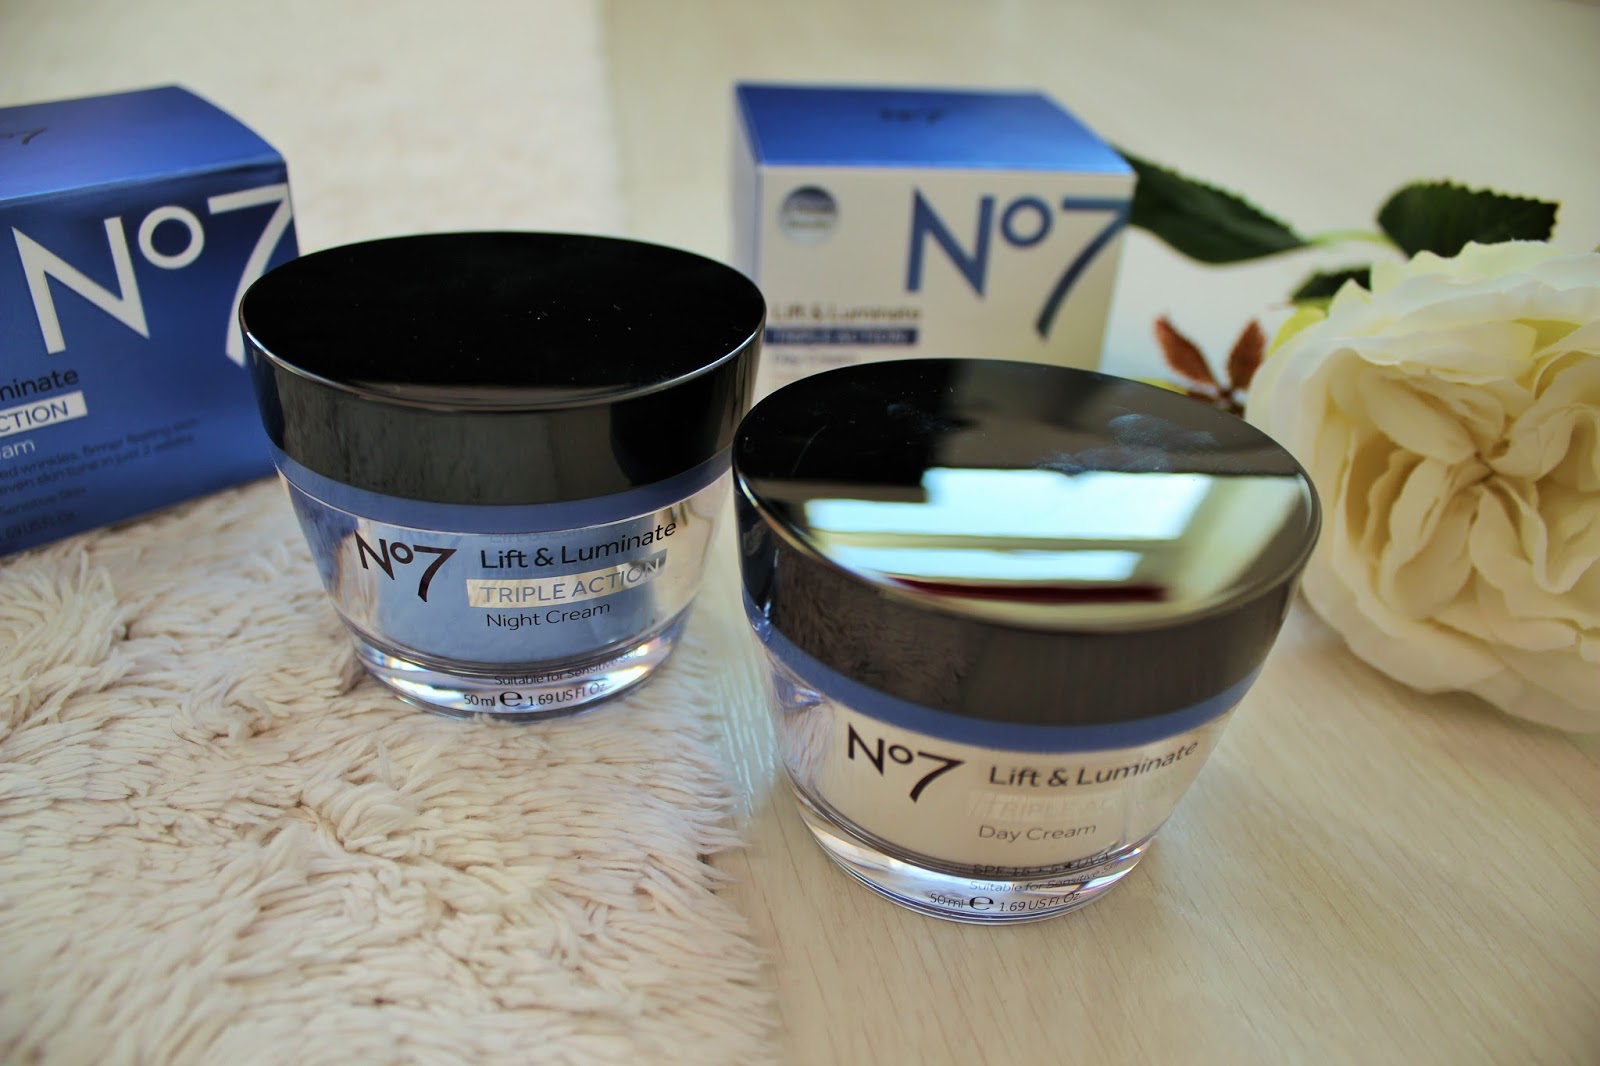 No7 Lift & Luminate Triple Action Range - My Verdict - 4